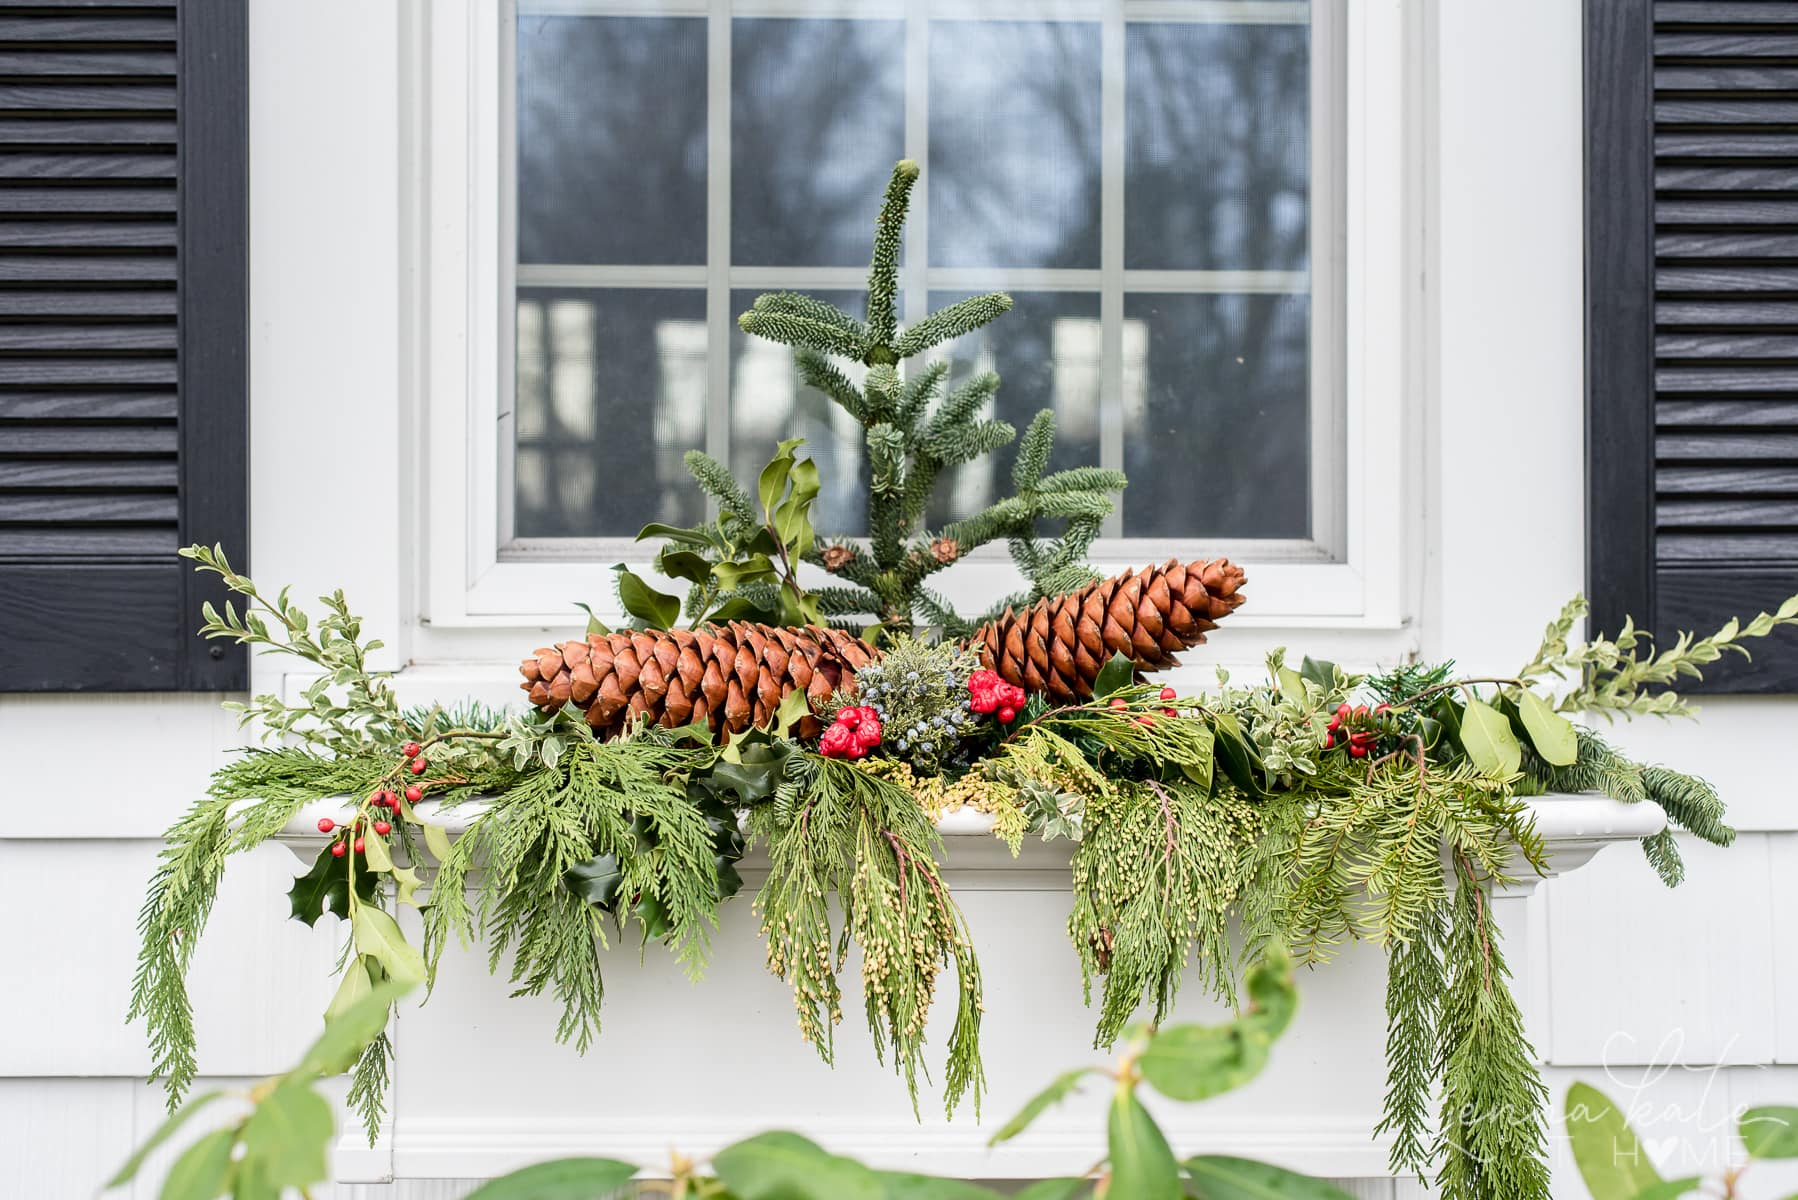 Window box filled with Christmas greenery, pinecones and berries